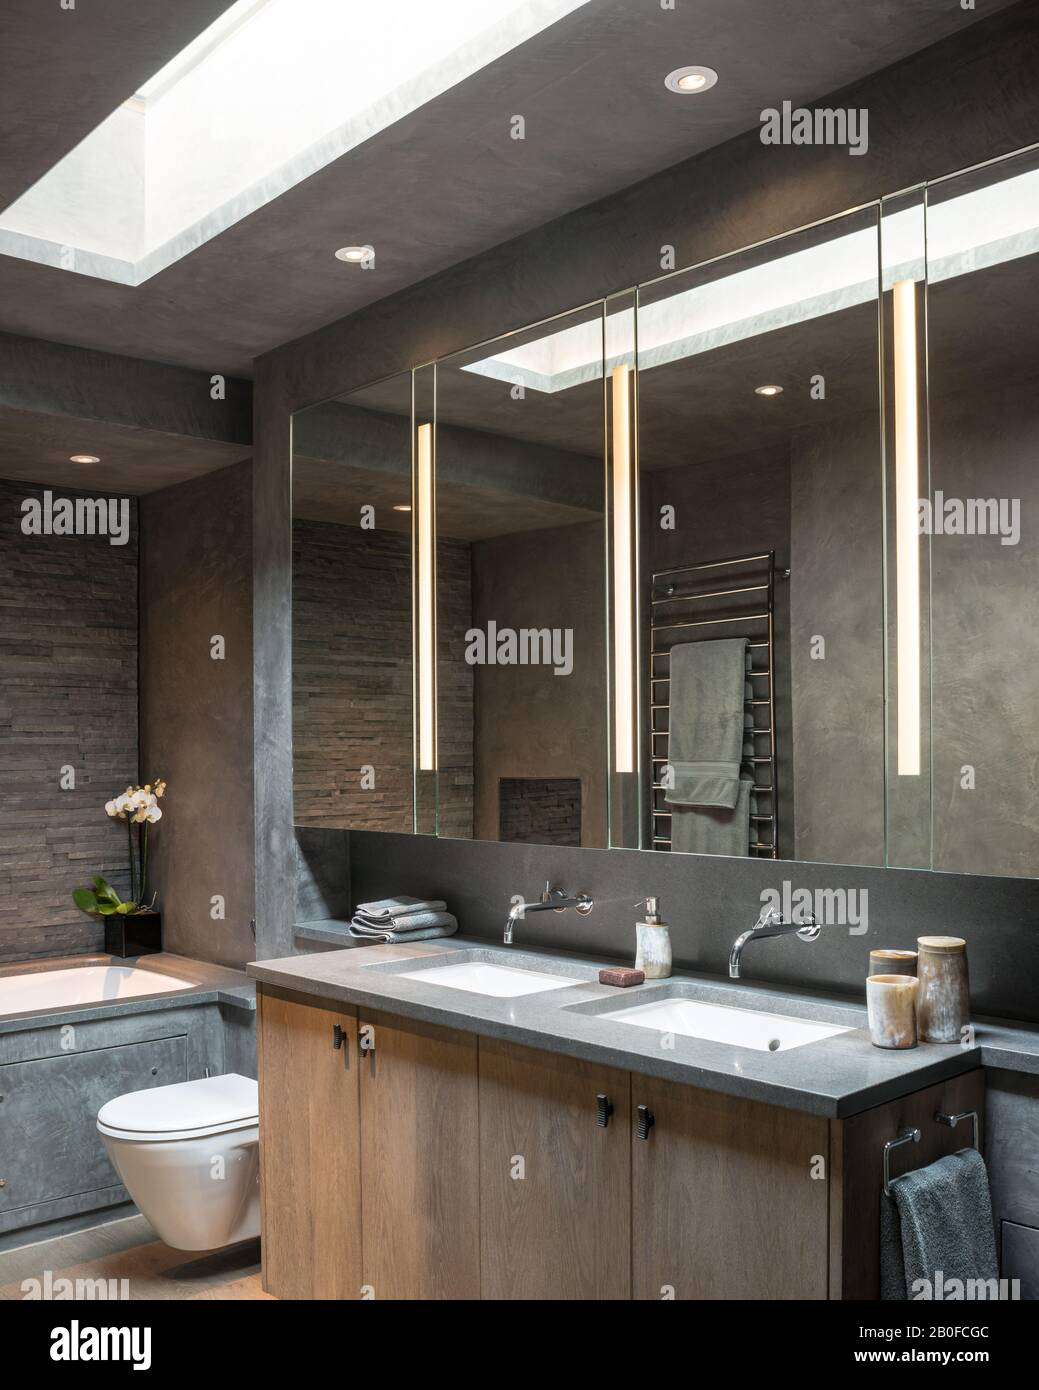 Large mirrored cabinets with double basins below skylight in modern West London apartment. Stock Photo